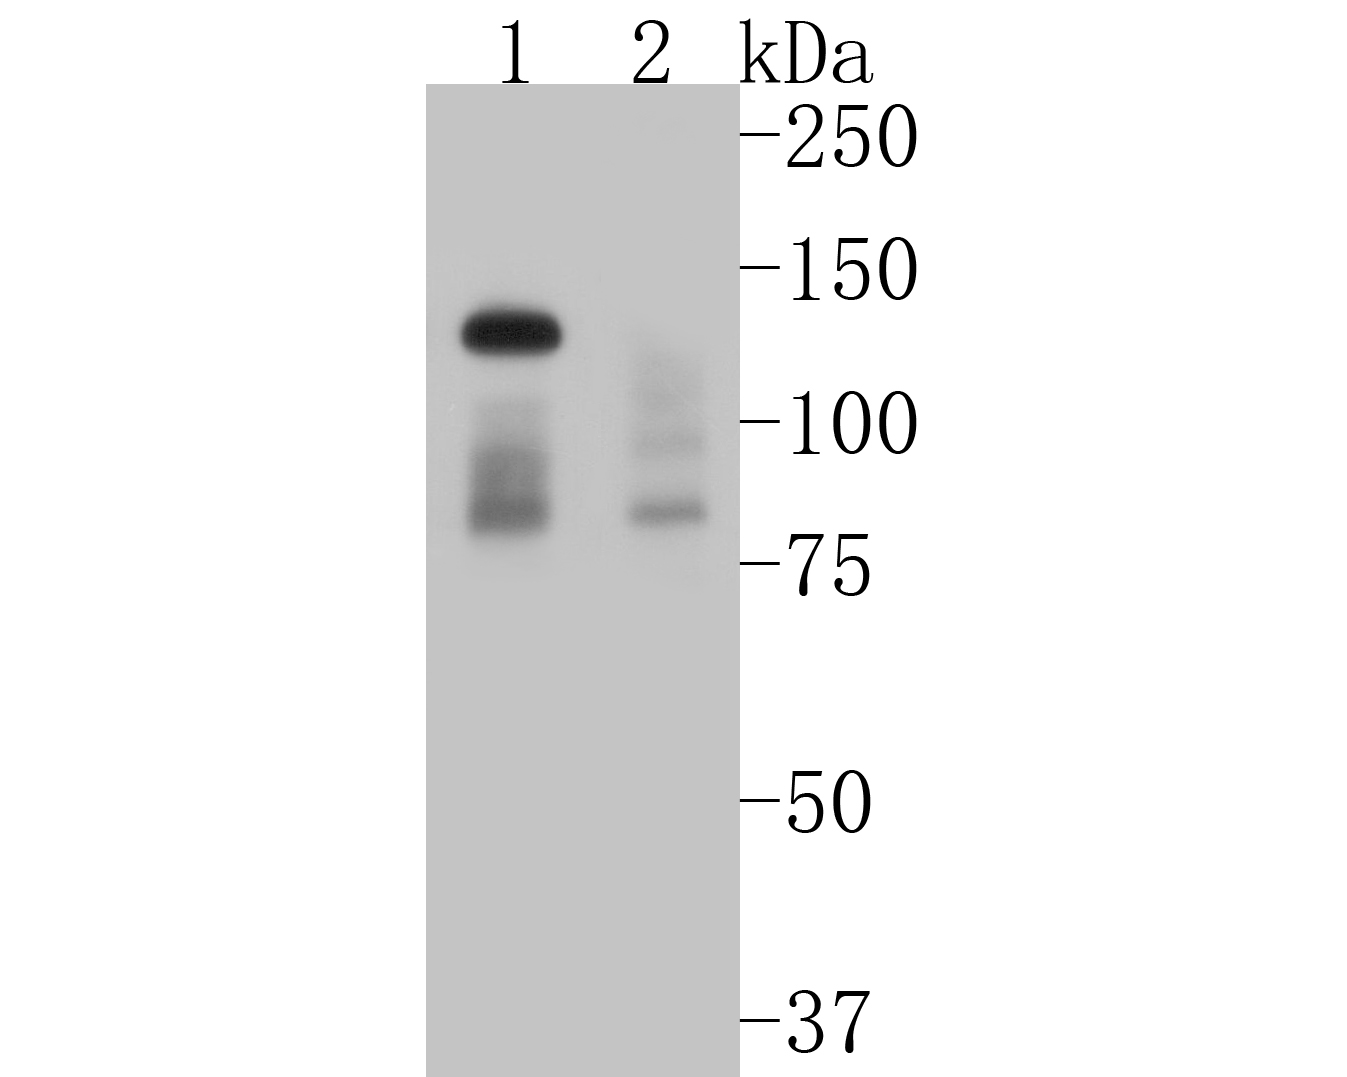 Western blot analysis of Dnmt3a on different lysates. Proteins were transferred to a PVDF membrane and blocked with 5% BSA in PBS for 1 hour at room temperature. The primary antibody (ET1609-31, 1/500) was used in 5% BSA at room temperature for 2 hours. Goat Anti-Rabbit IgG - HRP Secondary Antibody (HA1001) at 1:5,000 dilution was used for 1 hour at room temperature.<br /> Positive control: <br /> Lane 1: SH-SY5Y cell lysate<br /> Lane 2: mouse placenta tissue lysate